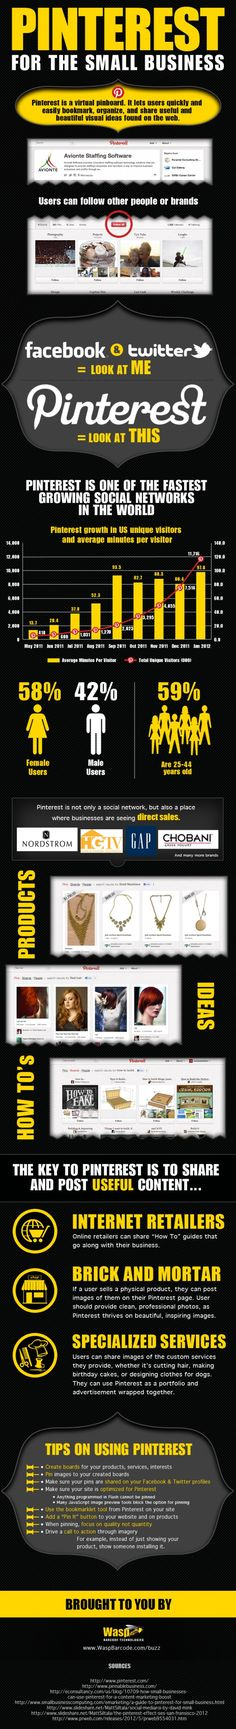 #Pinterest for Small Business: Why you have to use it. #SocialMedia #Marketing #SMB #Inforgraphic